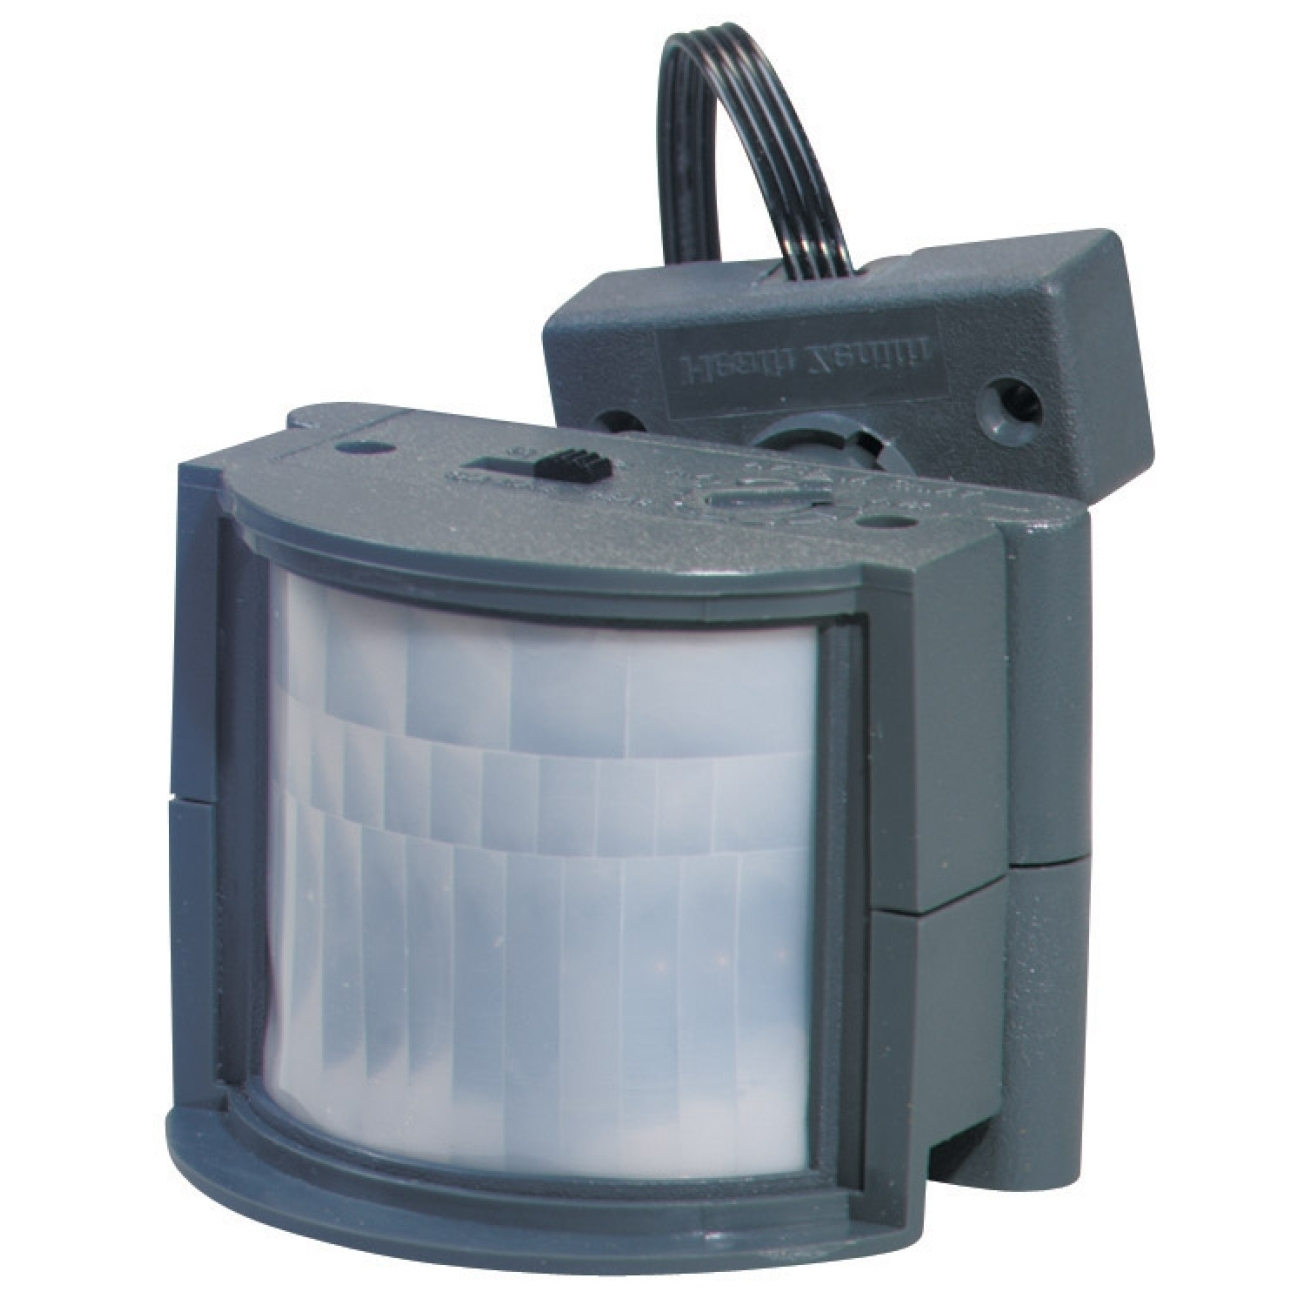 2019 Solar Spot Lights Outdoor Bunnings • Outdoor Lighting Pertaining To Outdoor Ceiling Lights At Bunnings (View 2 of 20)